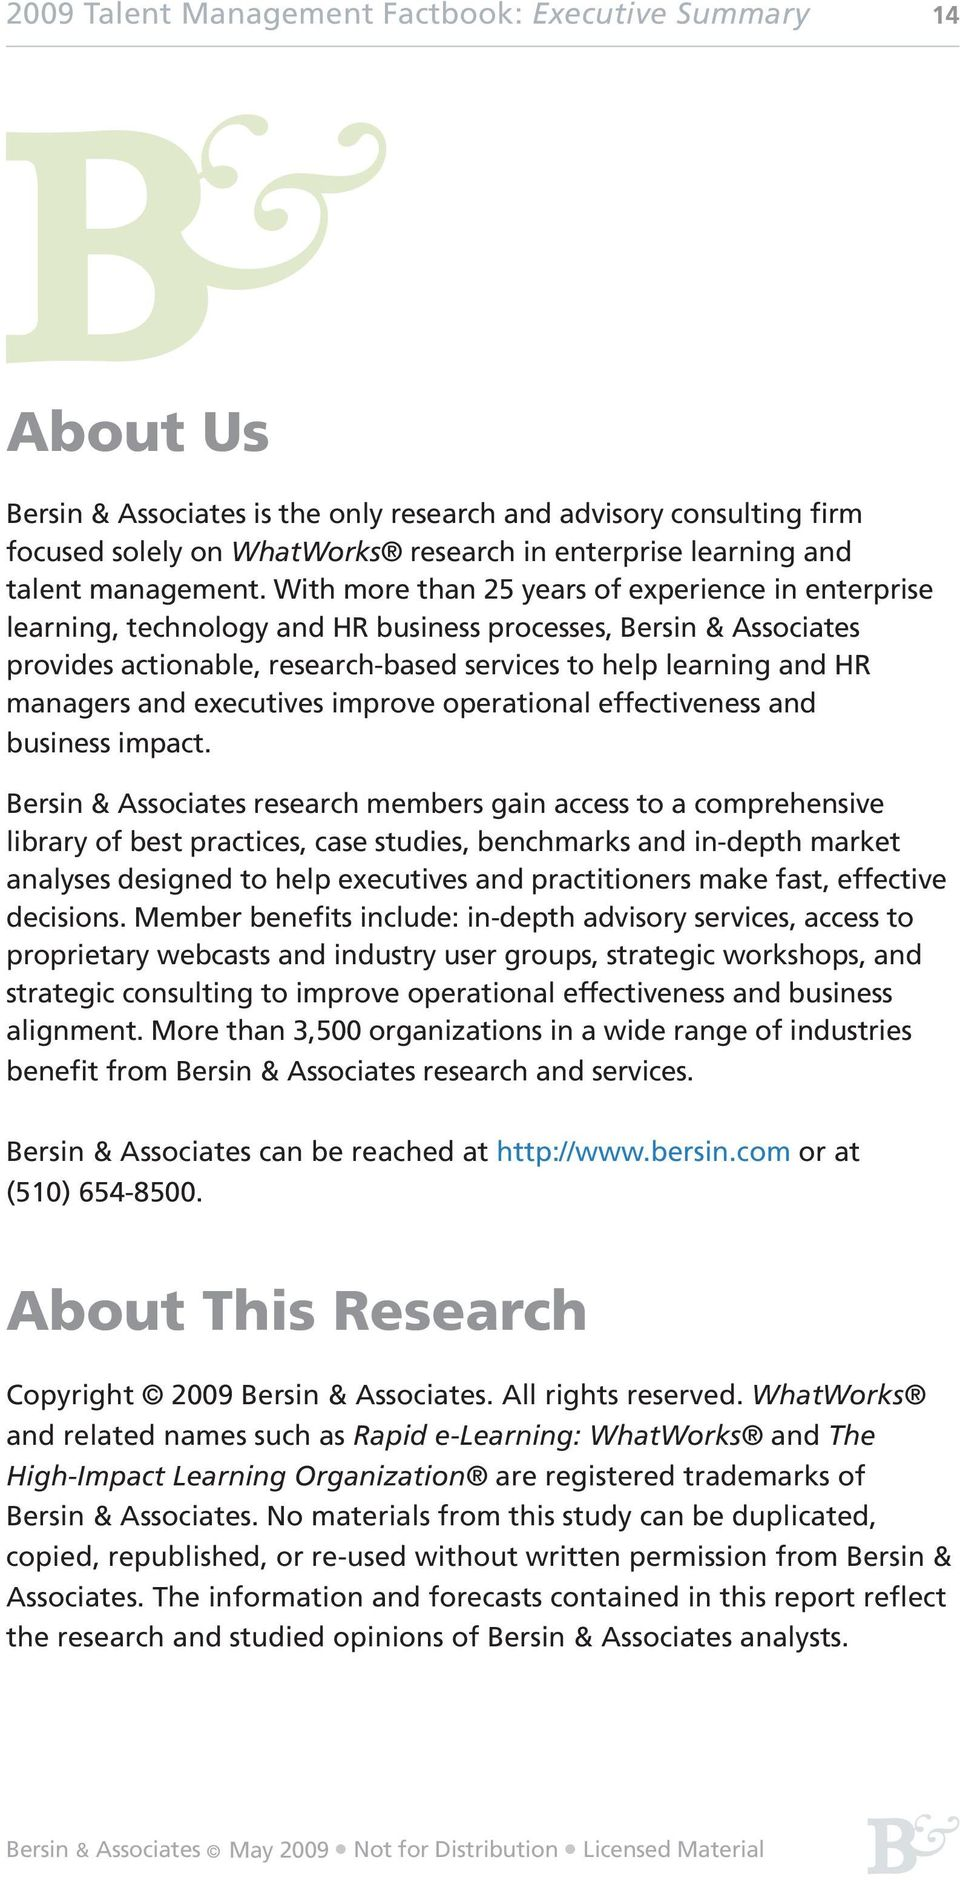 With more than 25 years of experience in enterprise learning, technology and HR business processes, Bersin & Associates provides actionable, research-based services to help learning and HR managers